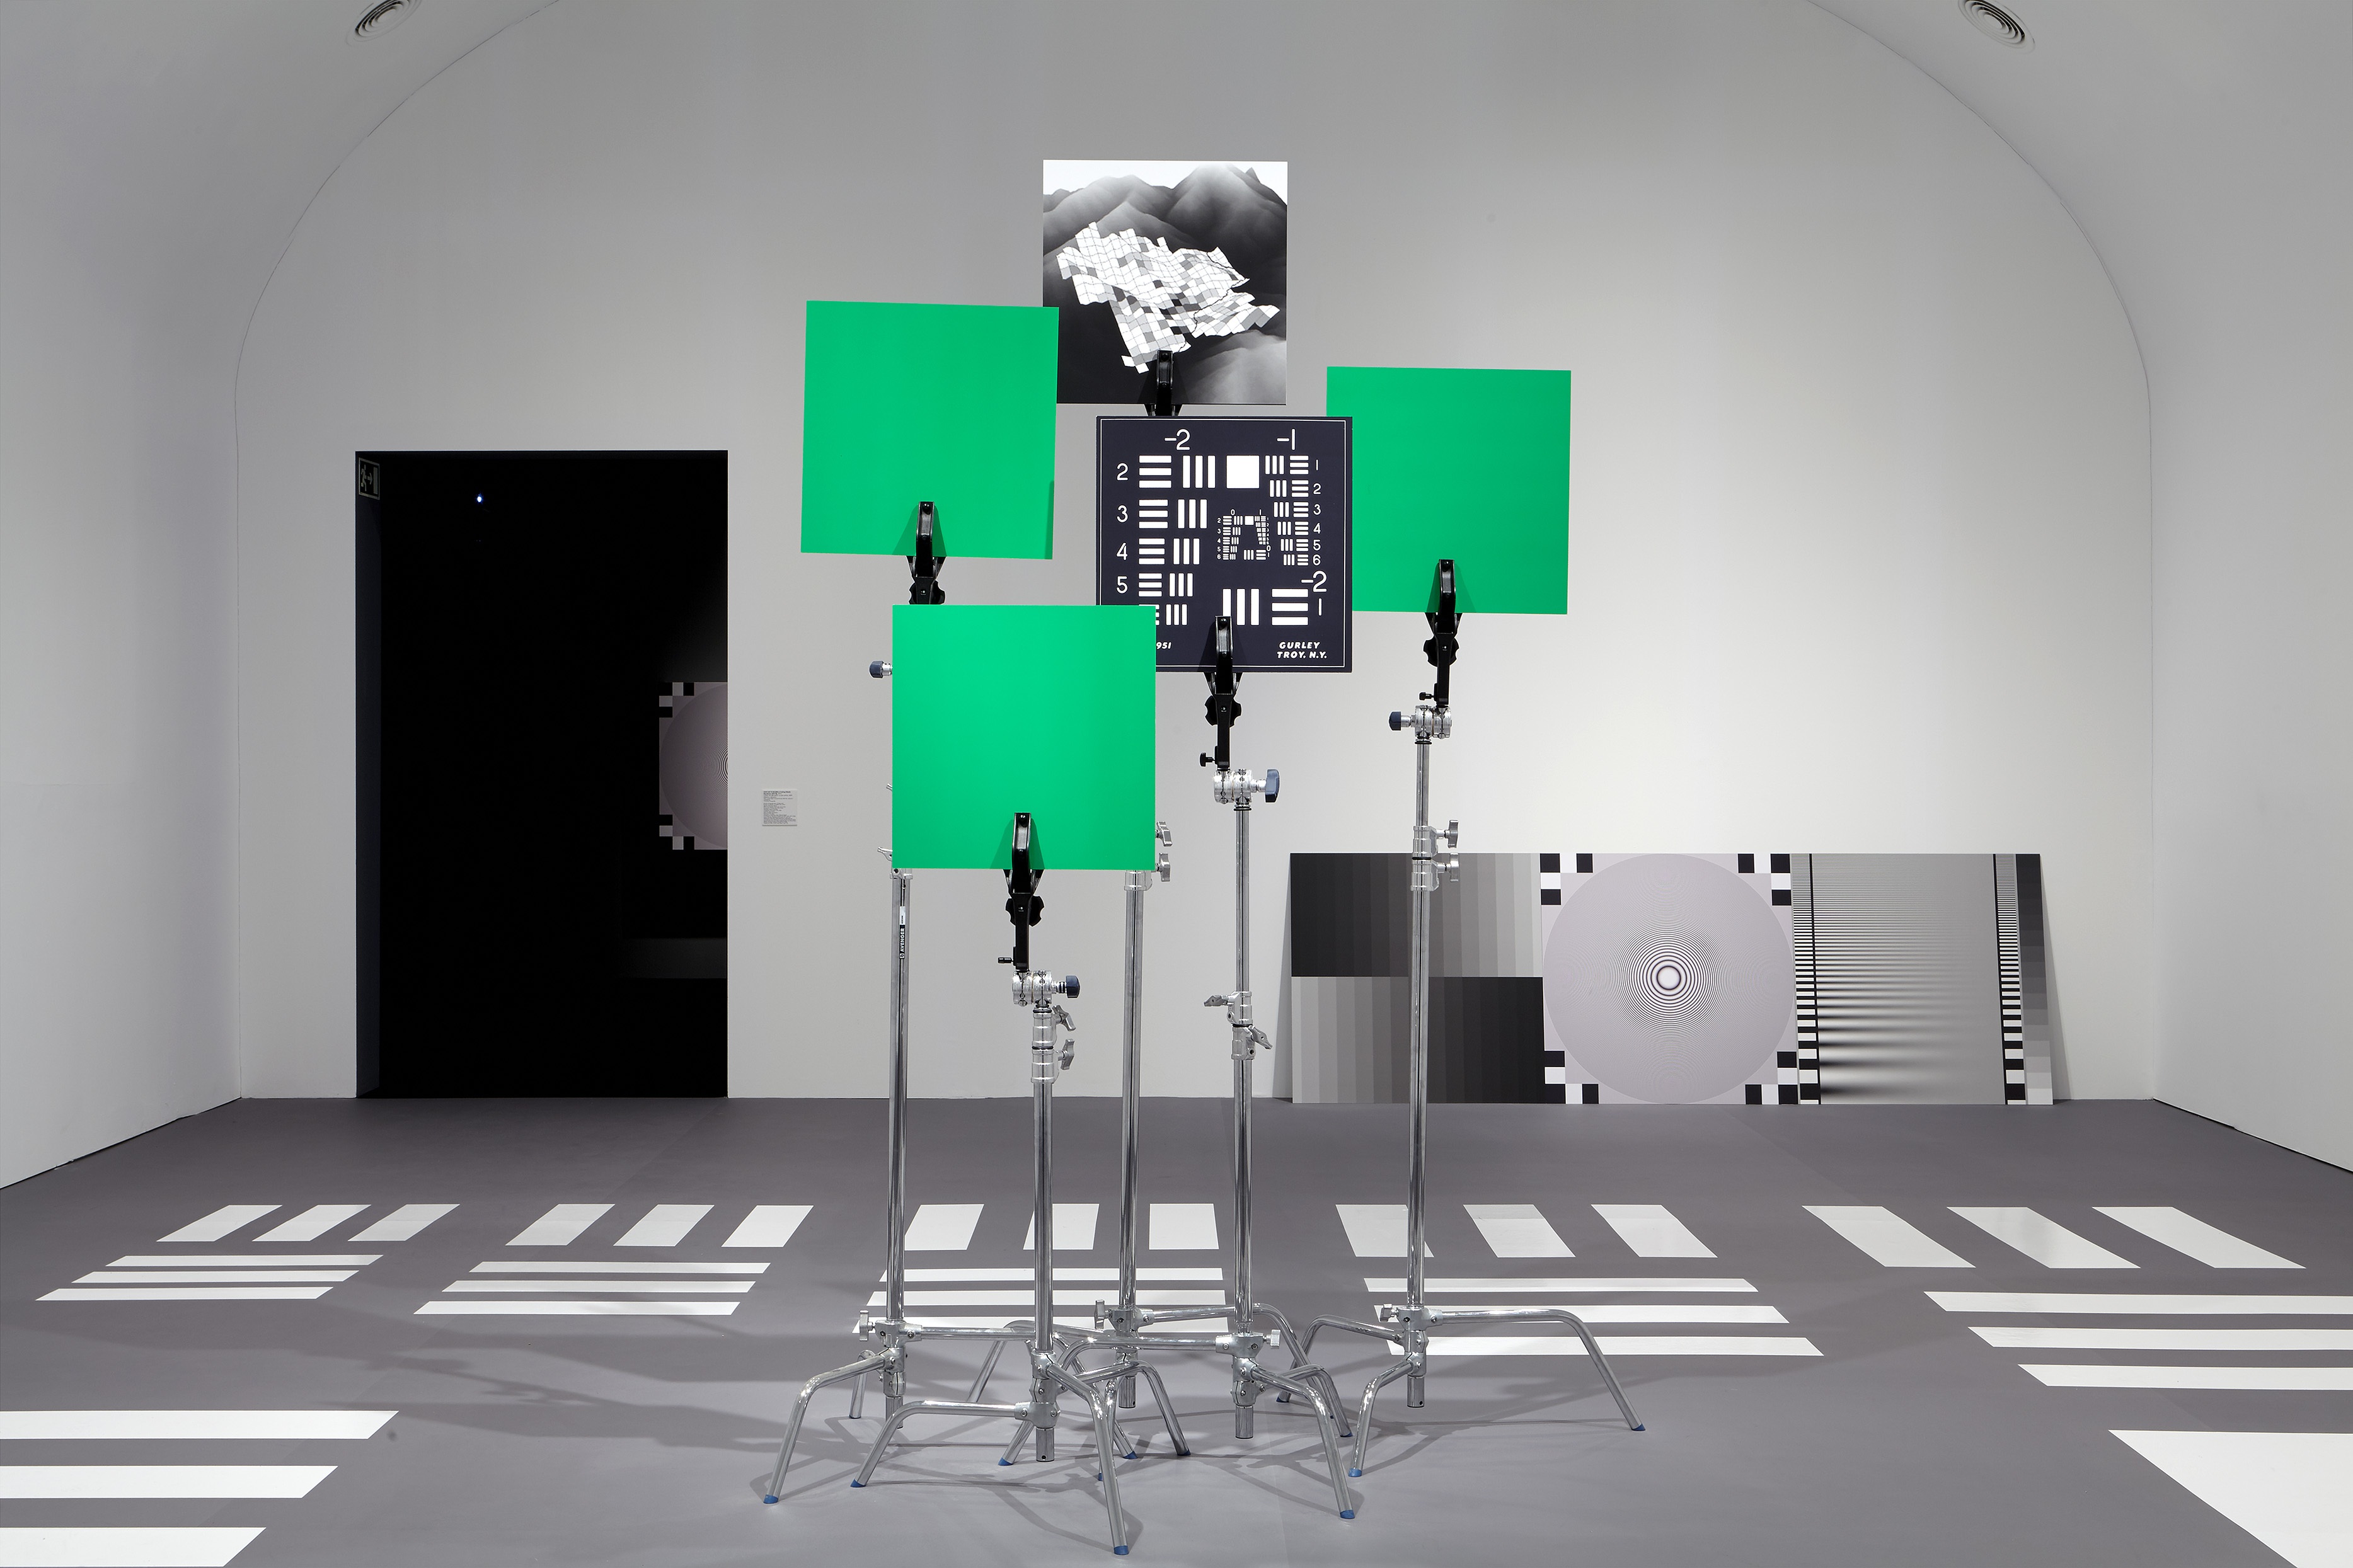 Hito Steyerl, How Not to Be Seen: A Fucking Didactic Educational .MOV File (2013). Exhibition view: Duty-Free Art, Museo Nacional Centro de Arte Reina Sofía, Madrid (11 November 2015–21 March 2016). Courtesy the artist, Andrew Kreps Gallery, New York; Esther Schipper, Berlin.